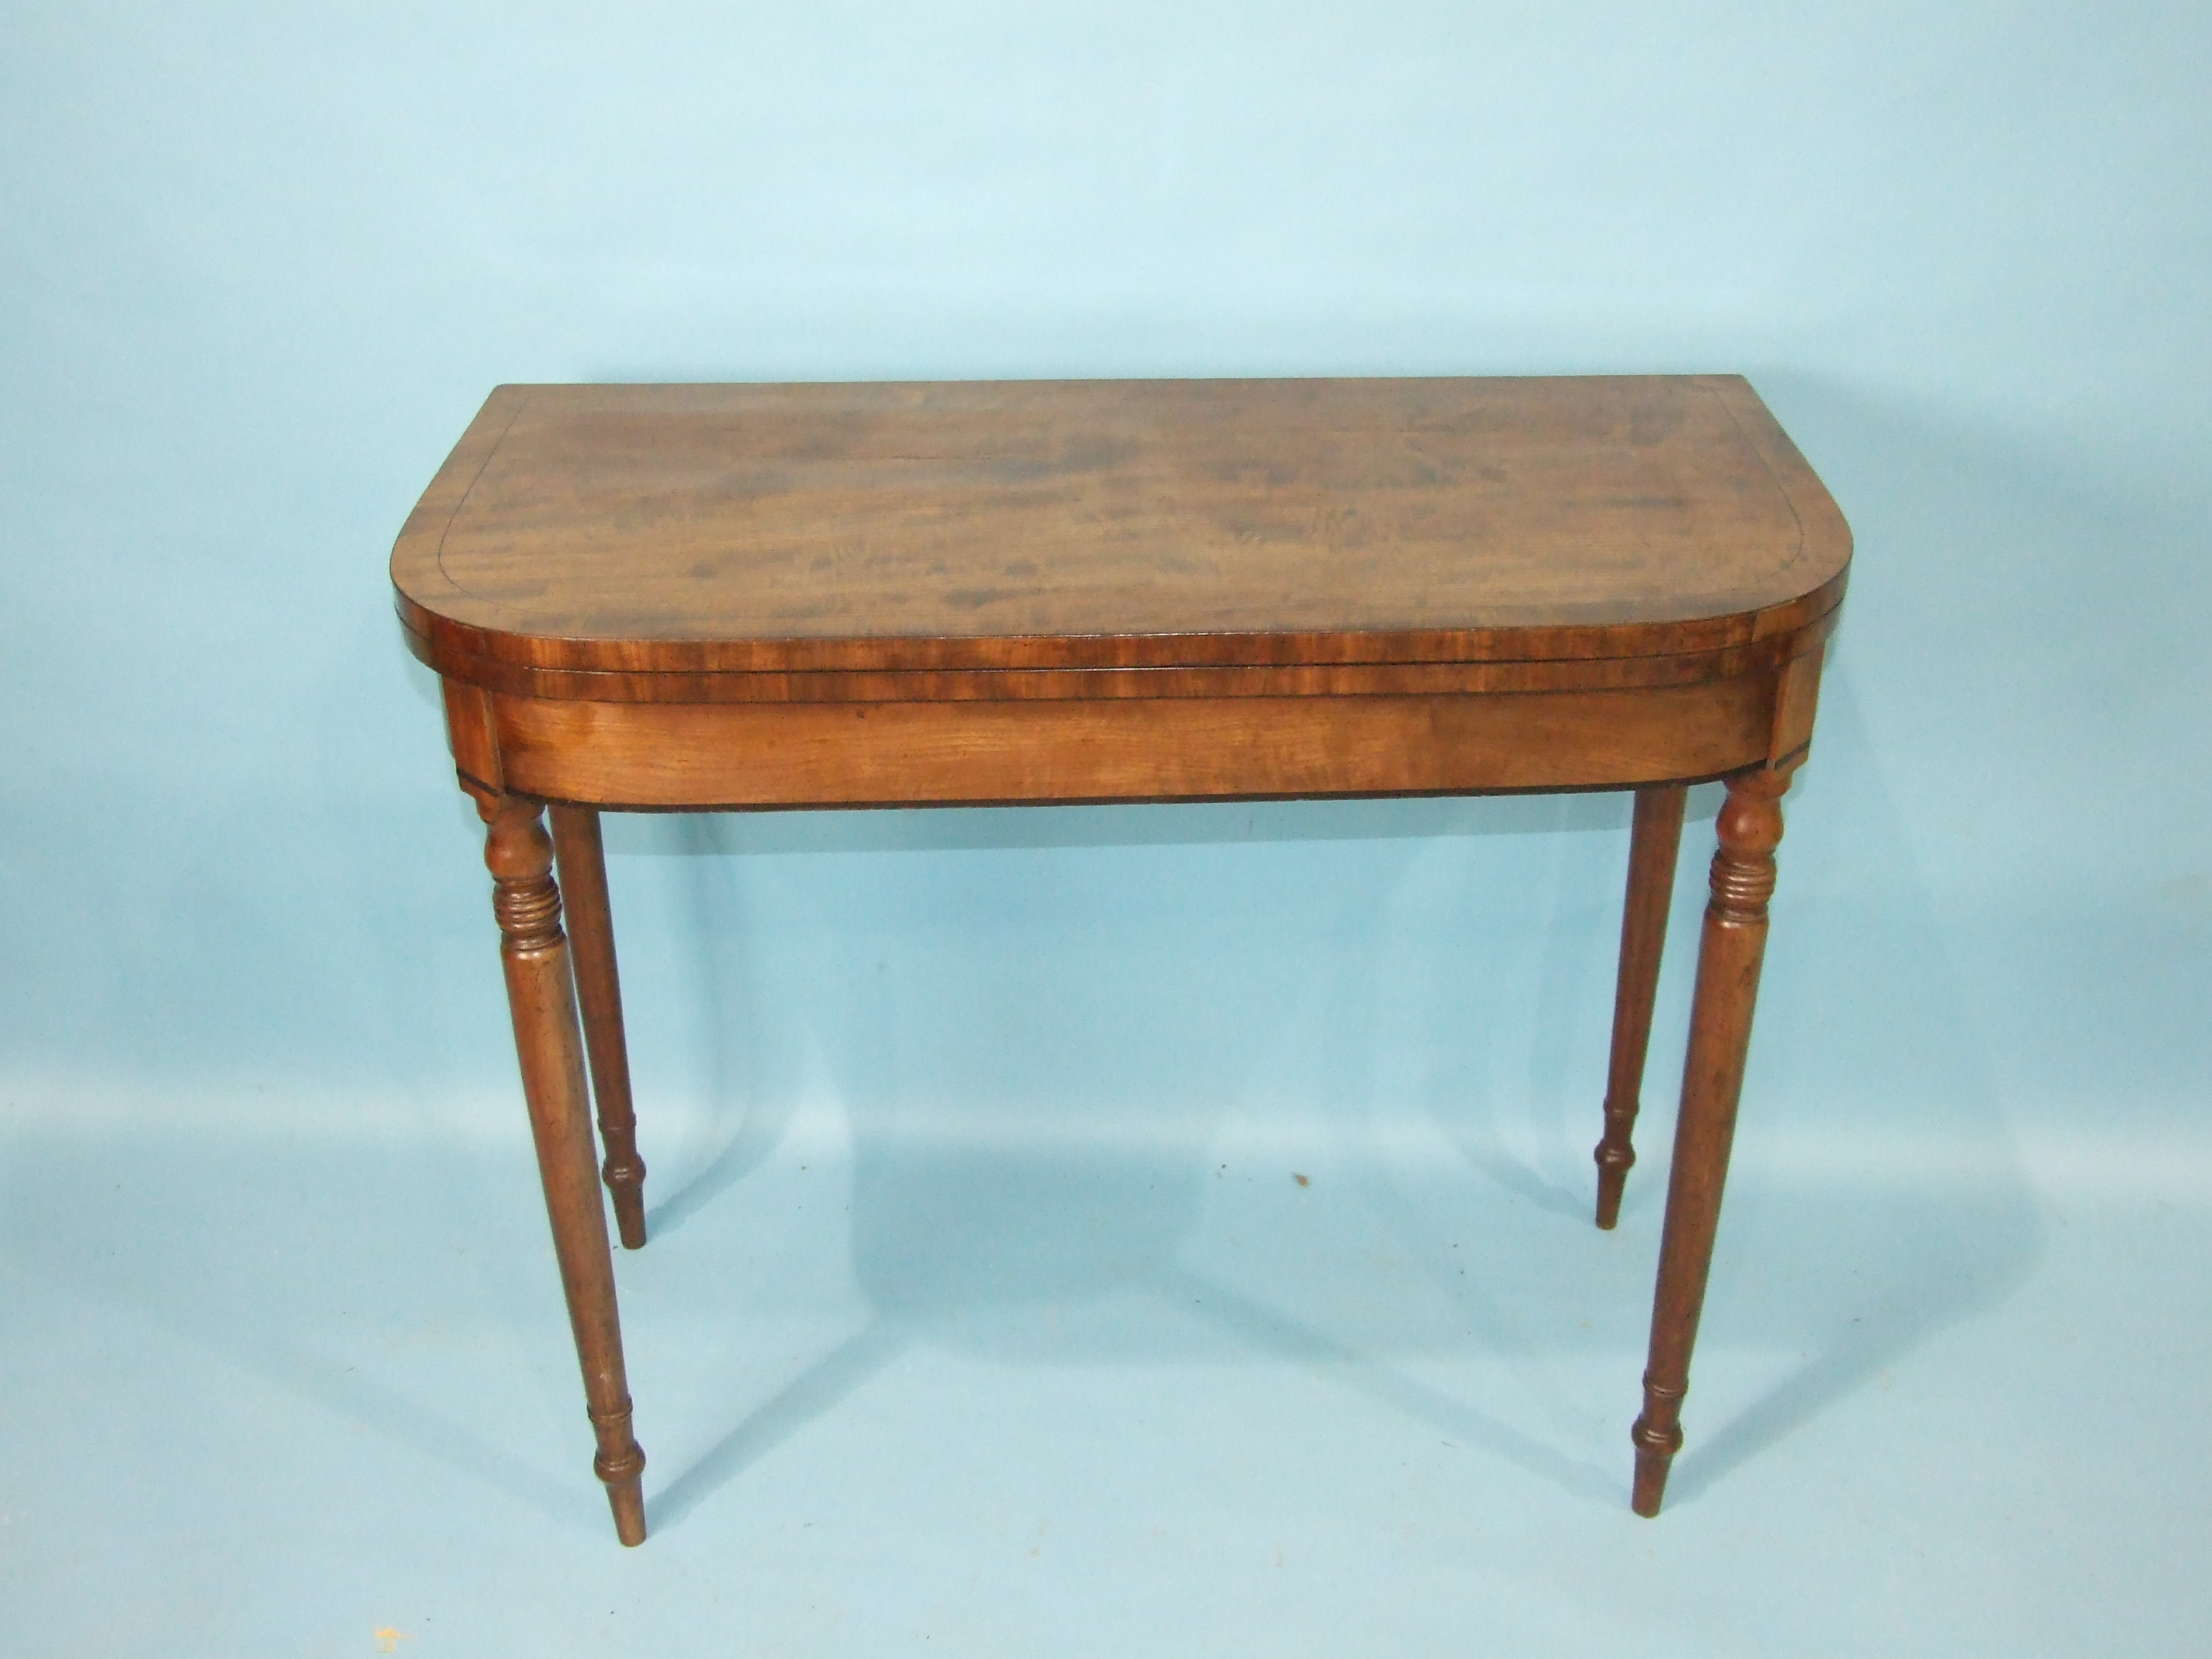 A Victorian mahogany three-tier whatnot on turned legs with castors, 73cm wide, 96cm high, a - Image 2 of 3